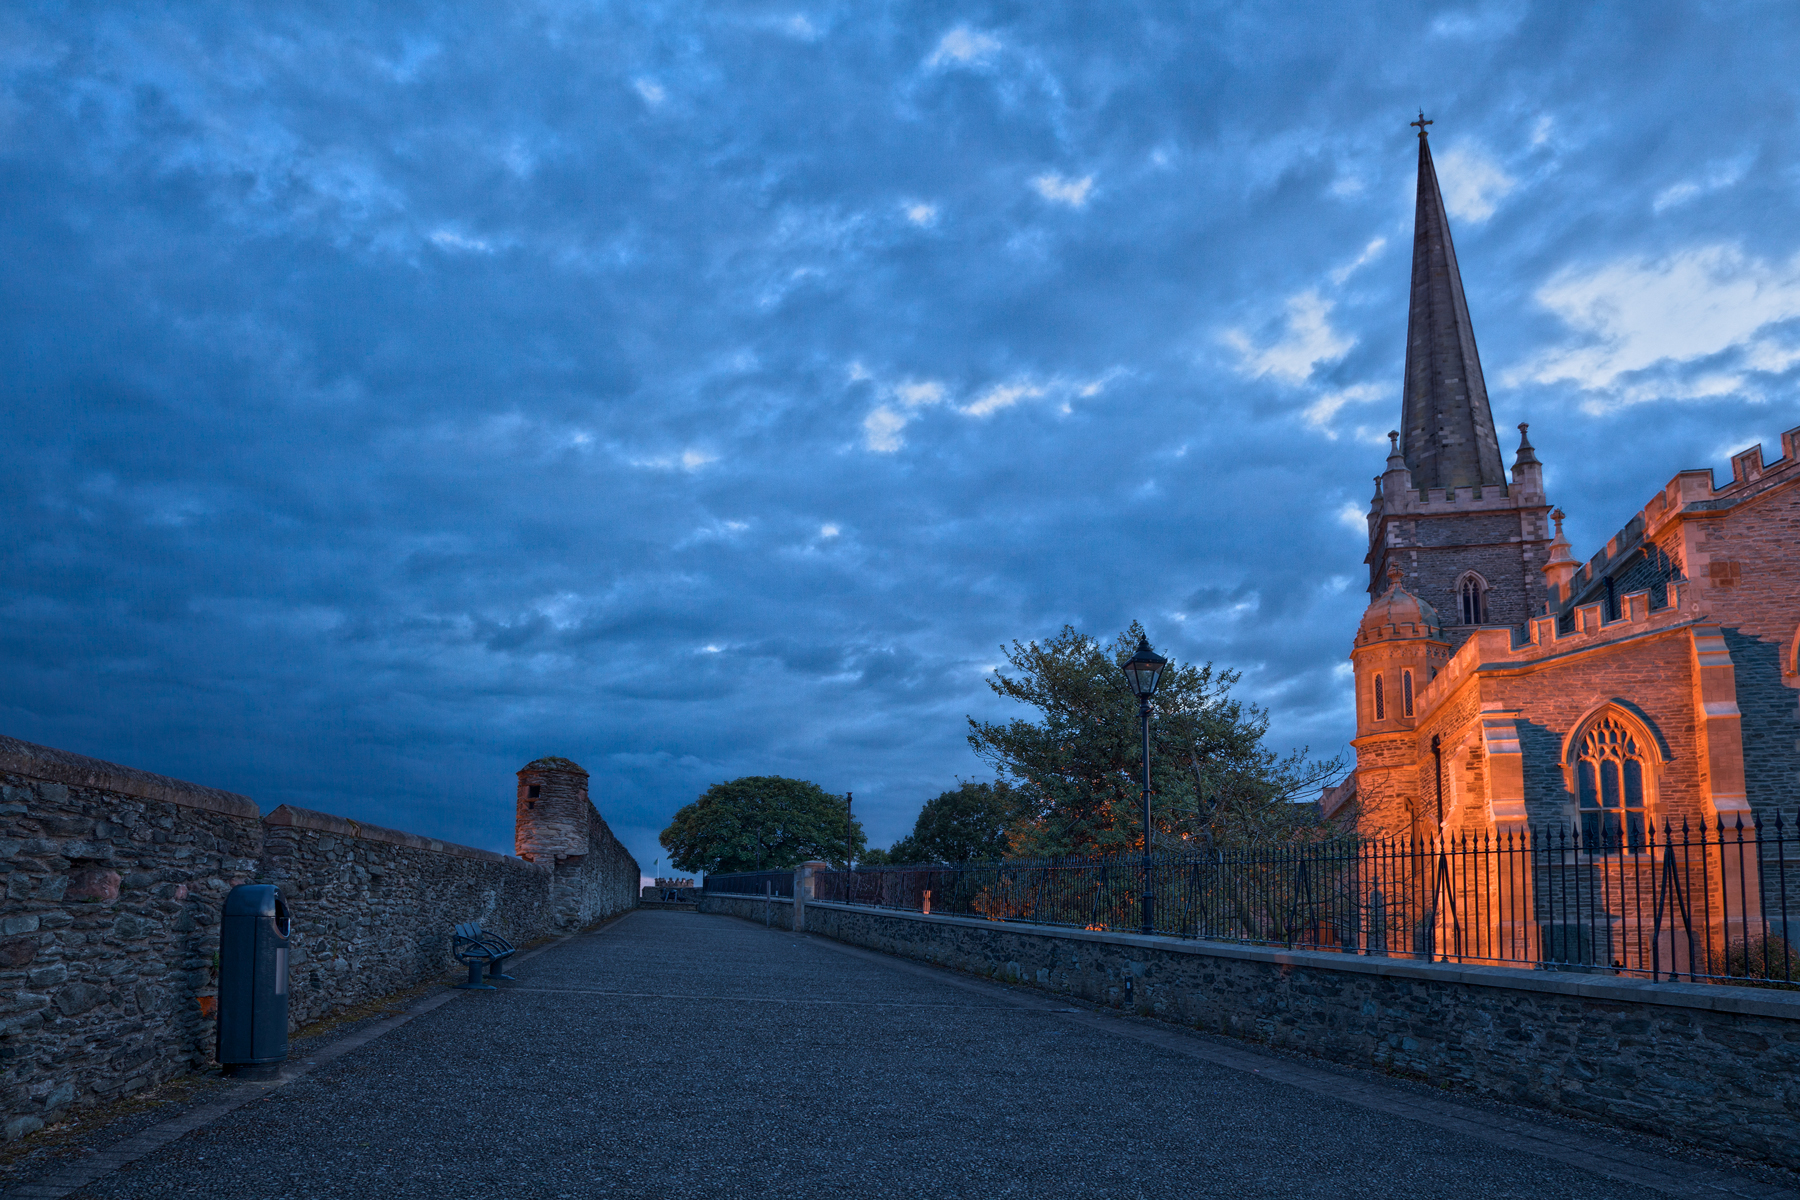 Derry Twilight - HDR, Angle, Photo, Scape, Resource, HQ Photo